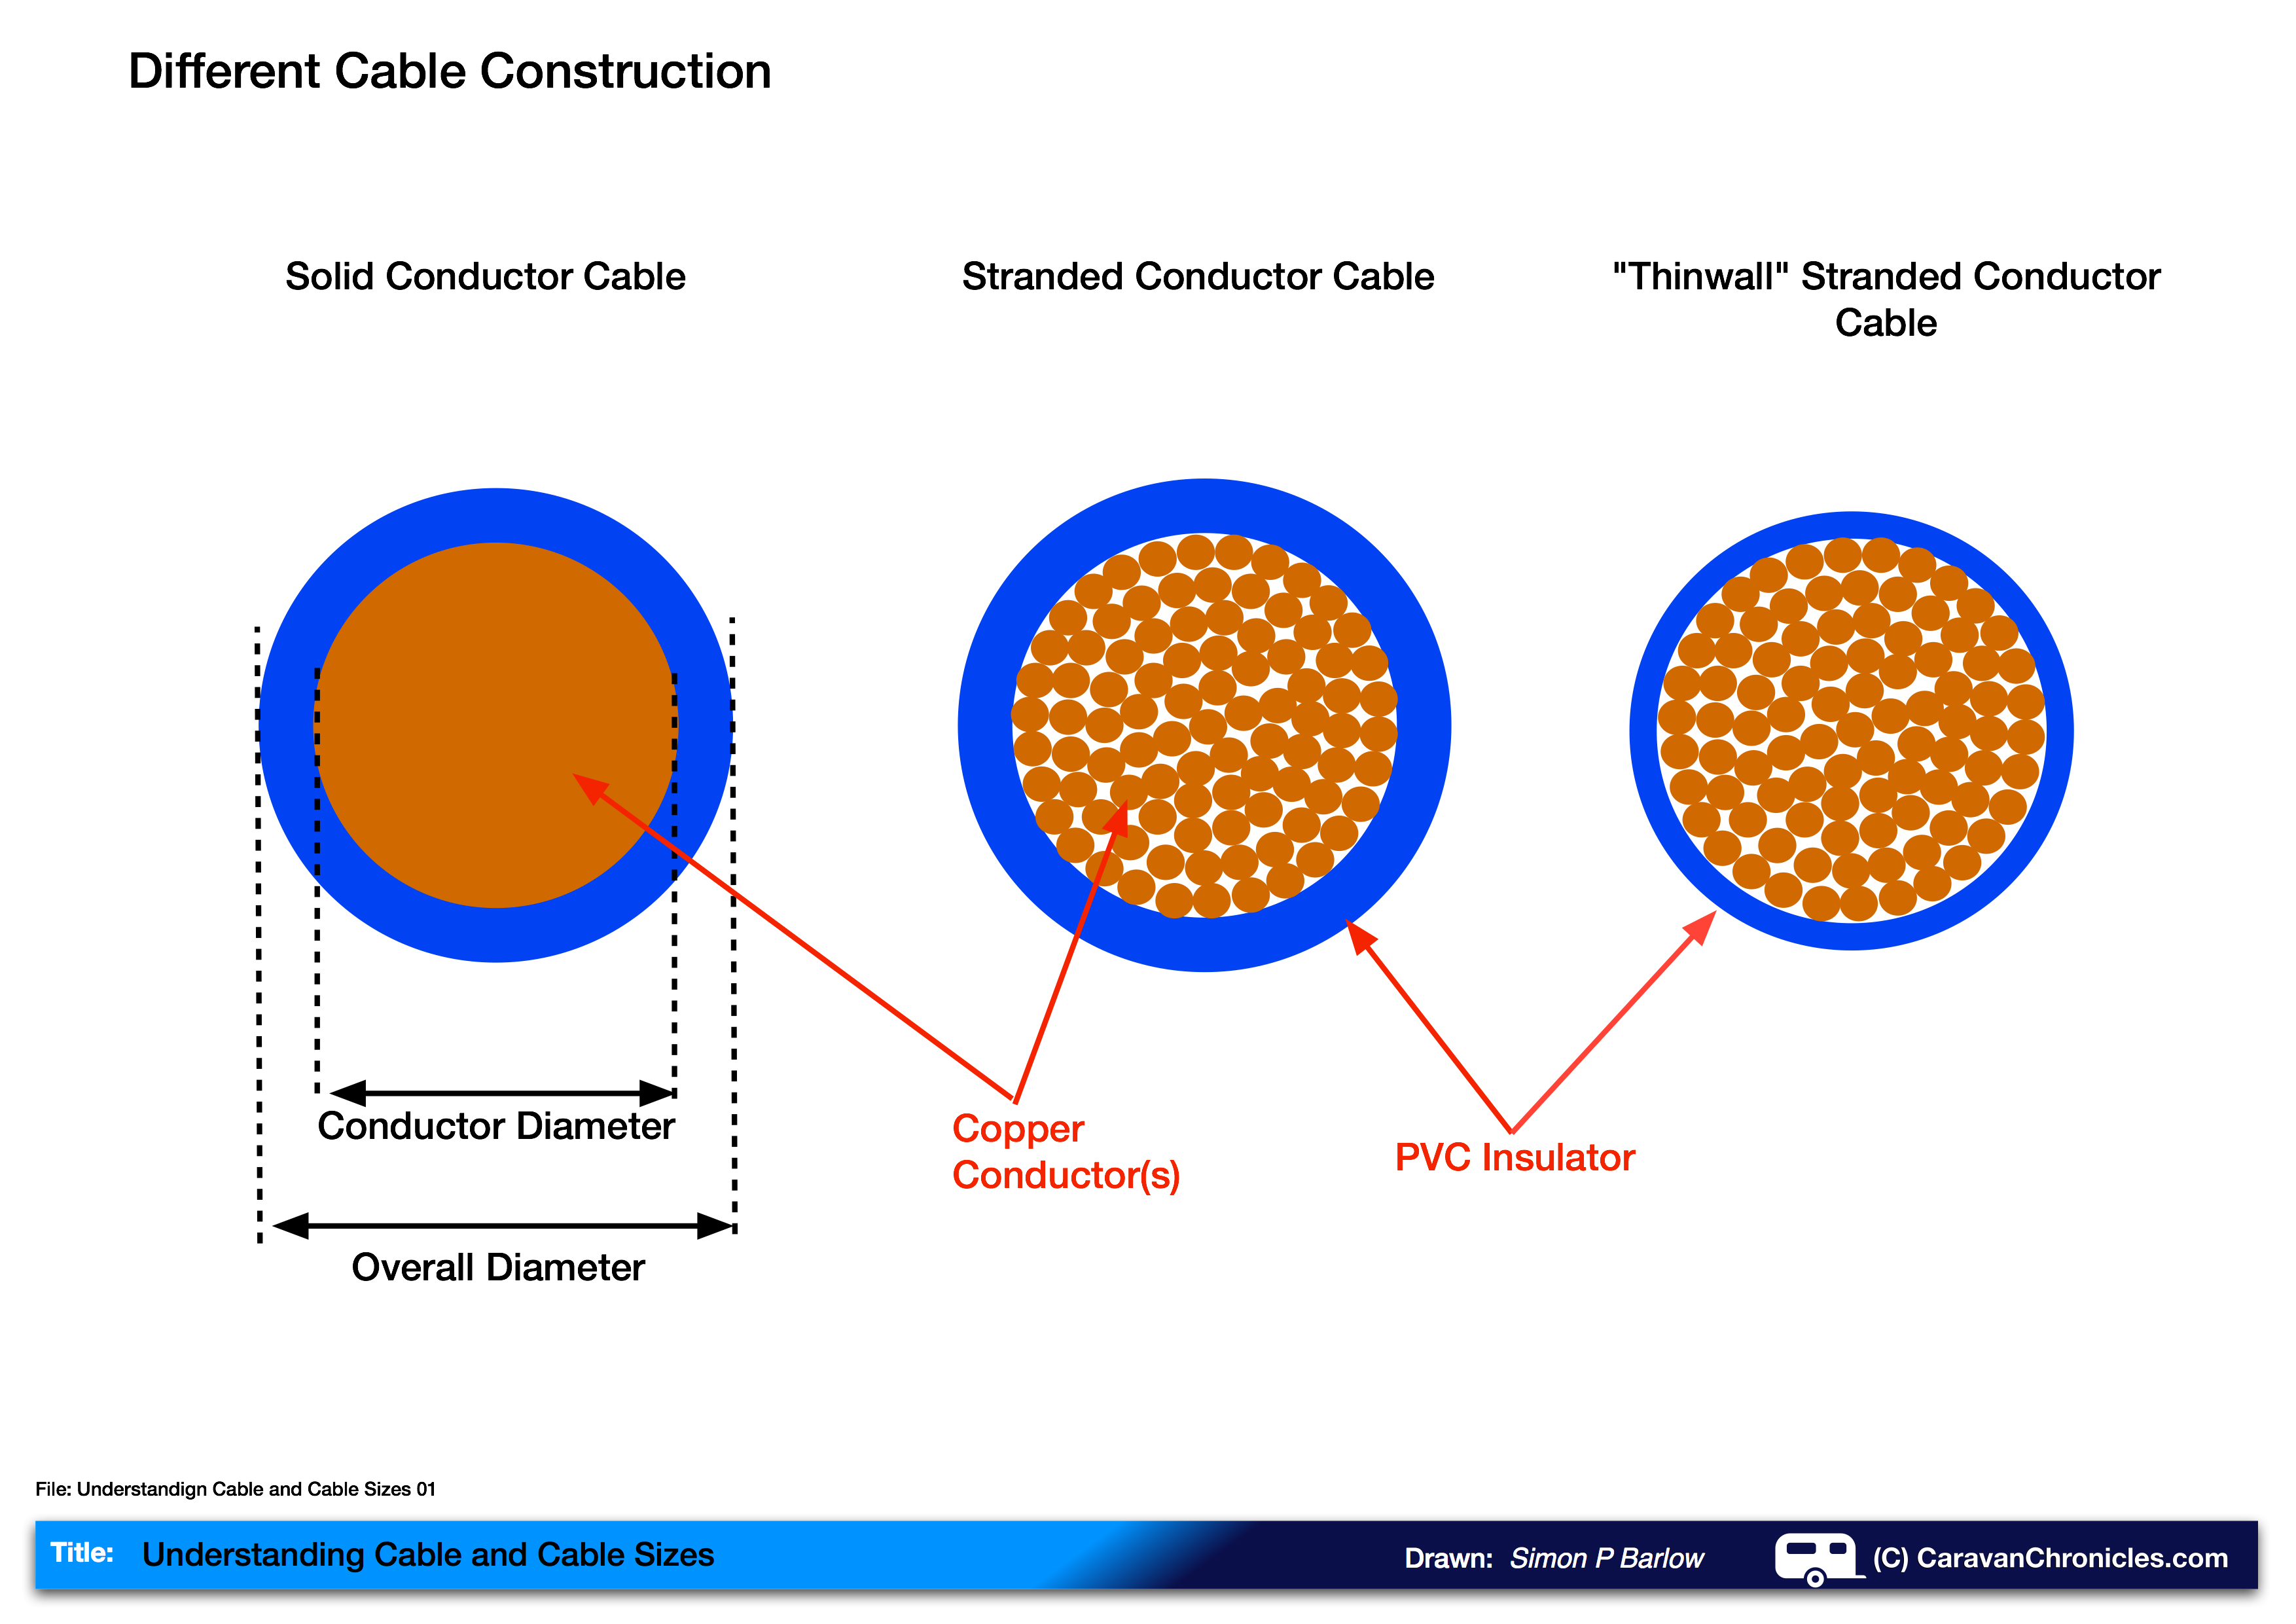 Understanding cable and cable sizes caravan chronicles understanding cable and cable sizes 01 greentooth